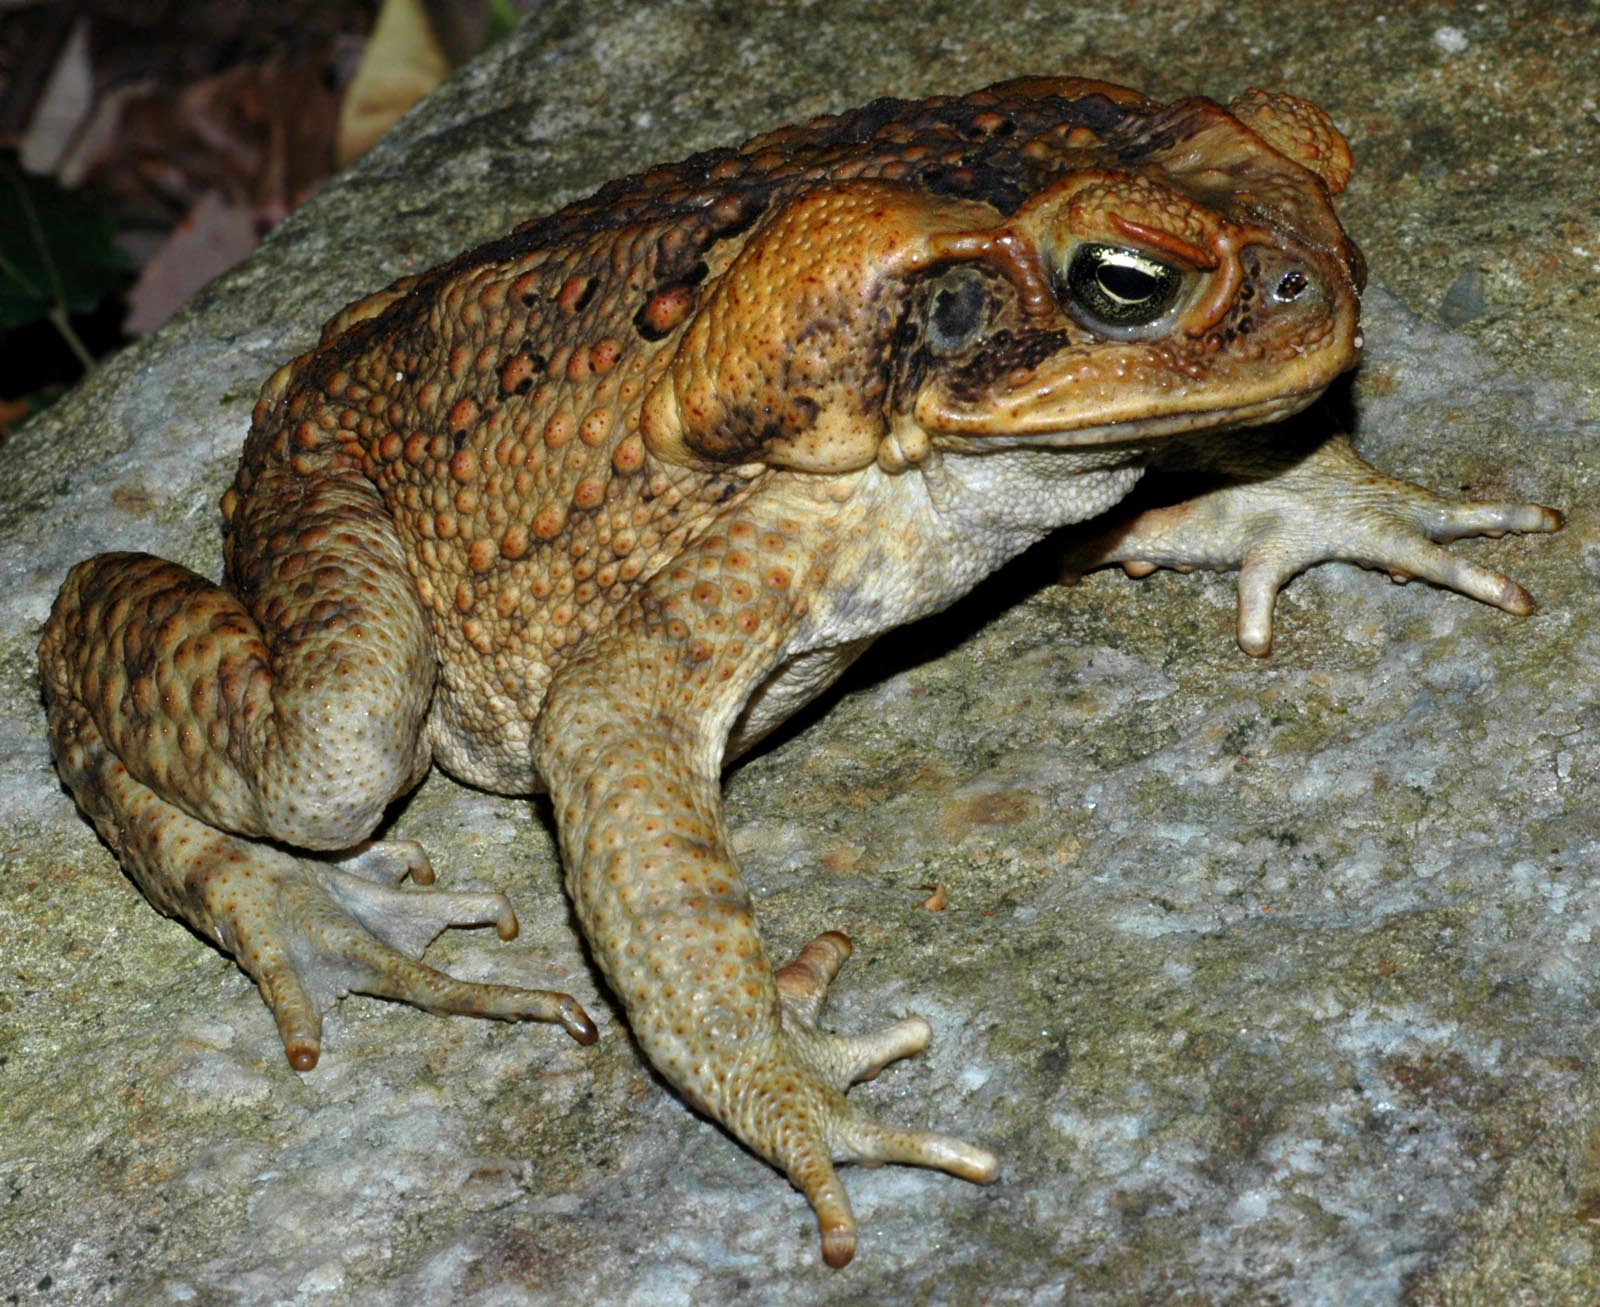 image of cane toad on a rock. Photo by: Springvale National Park